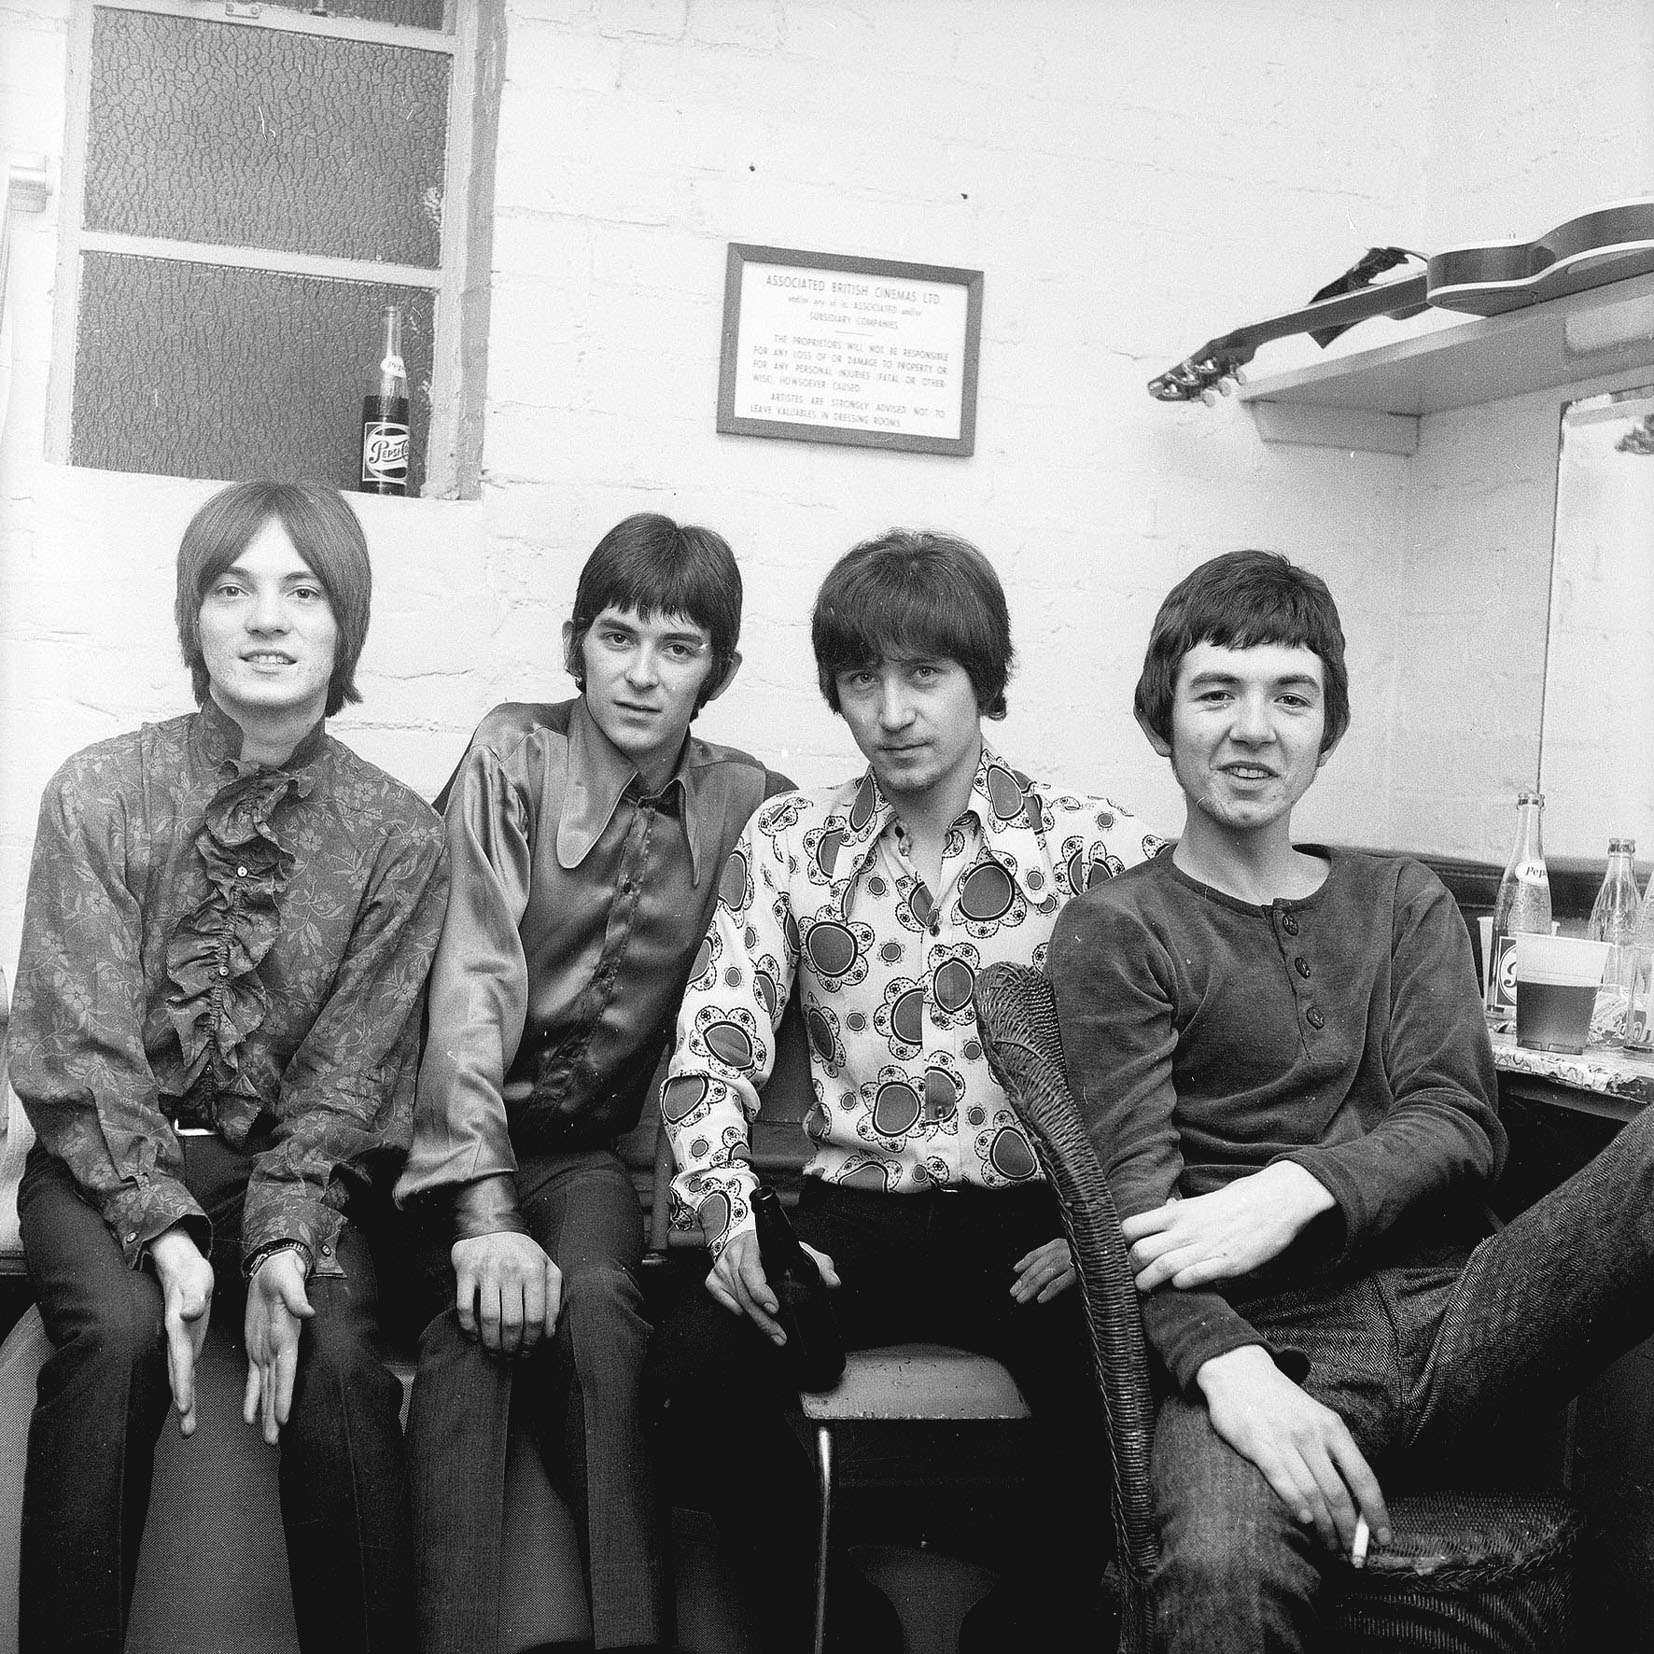 SMALL FACES - LARGE B&W PHOTO